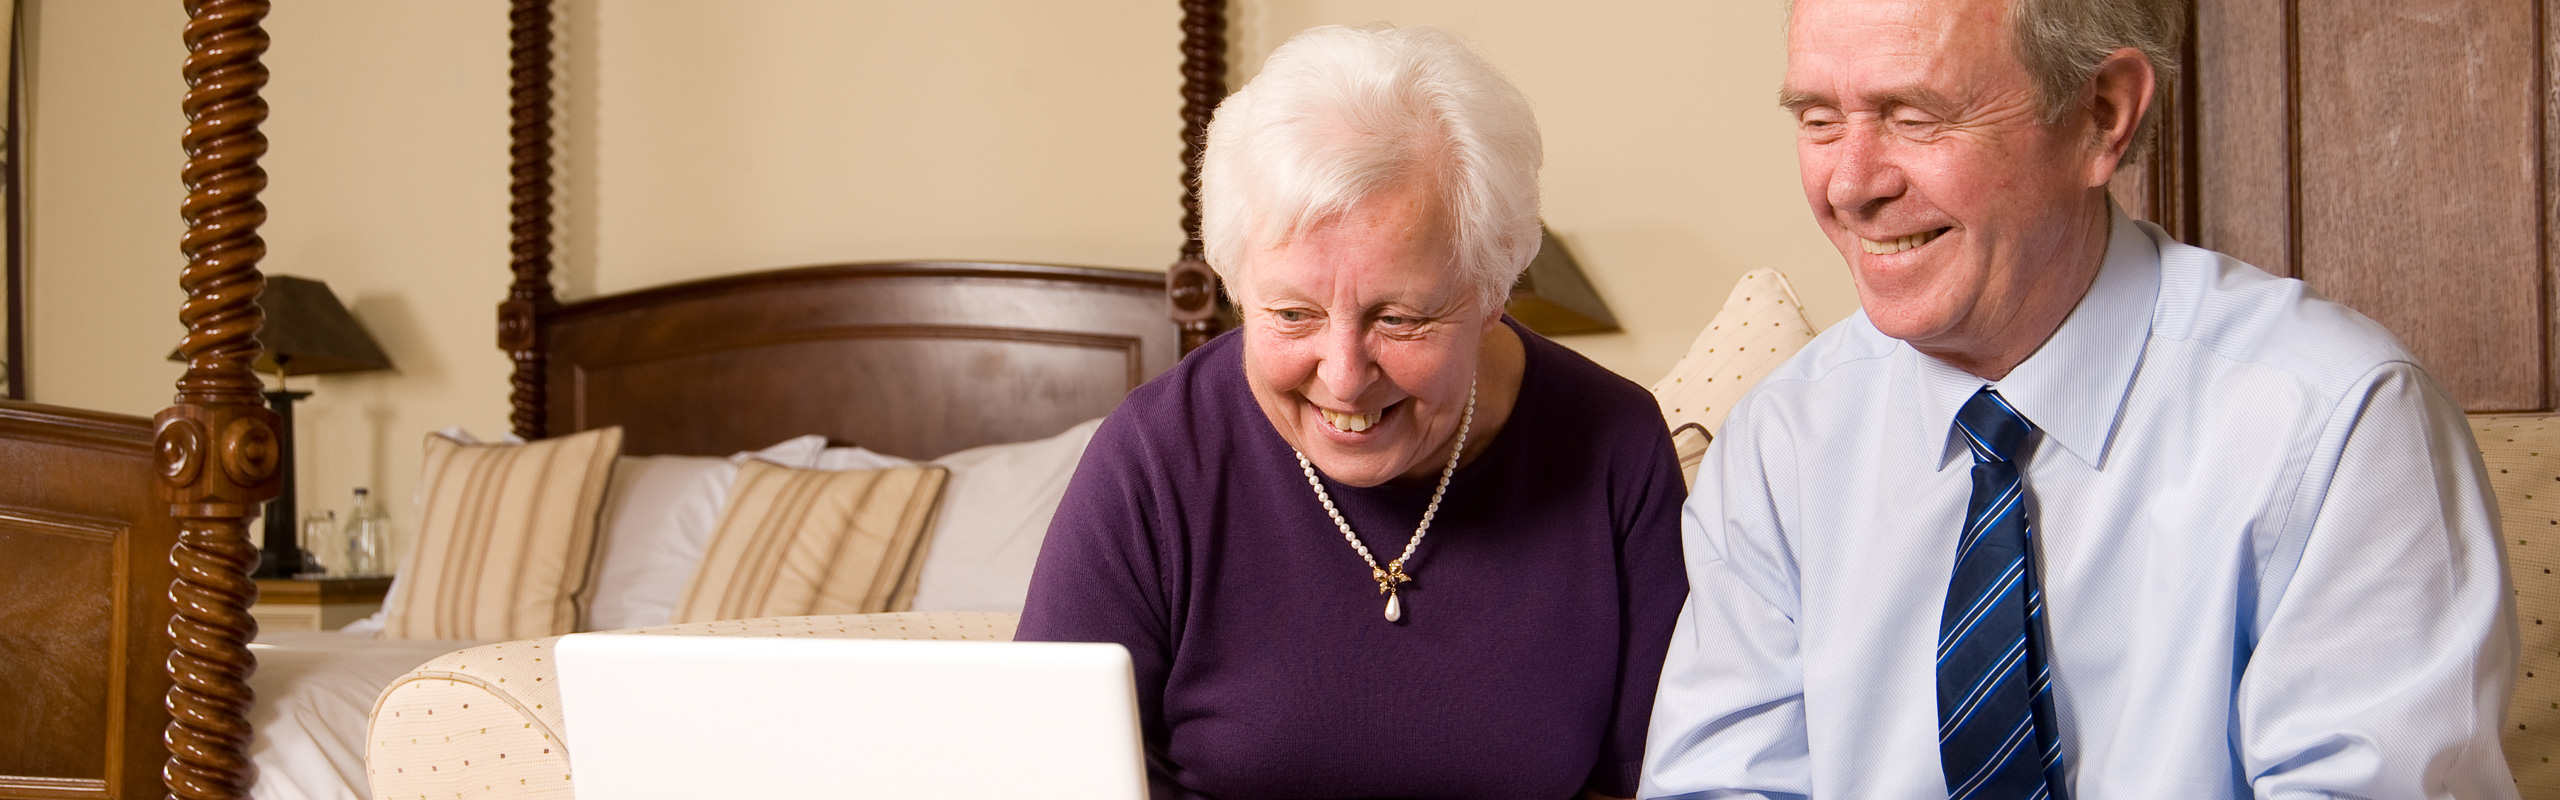 elderly couple with a laptop